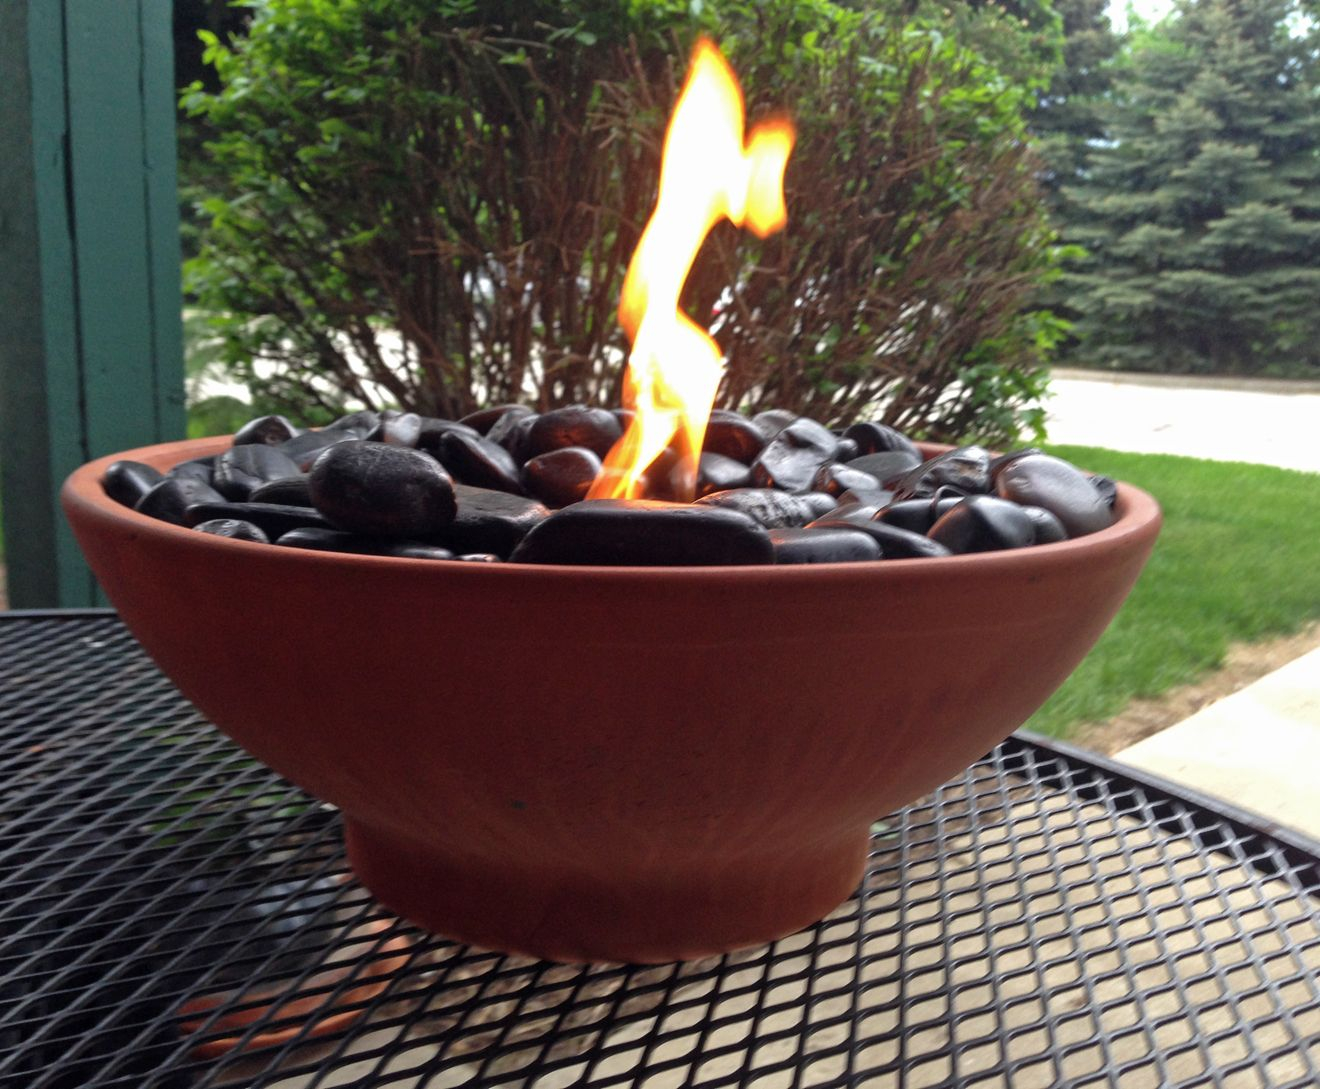 Diy Table Top Fire Pit Made With Black River Rocks And Real Flame inside sizing 1320 X 1089